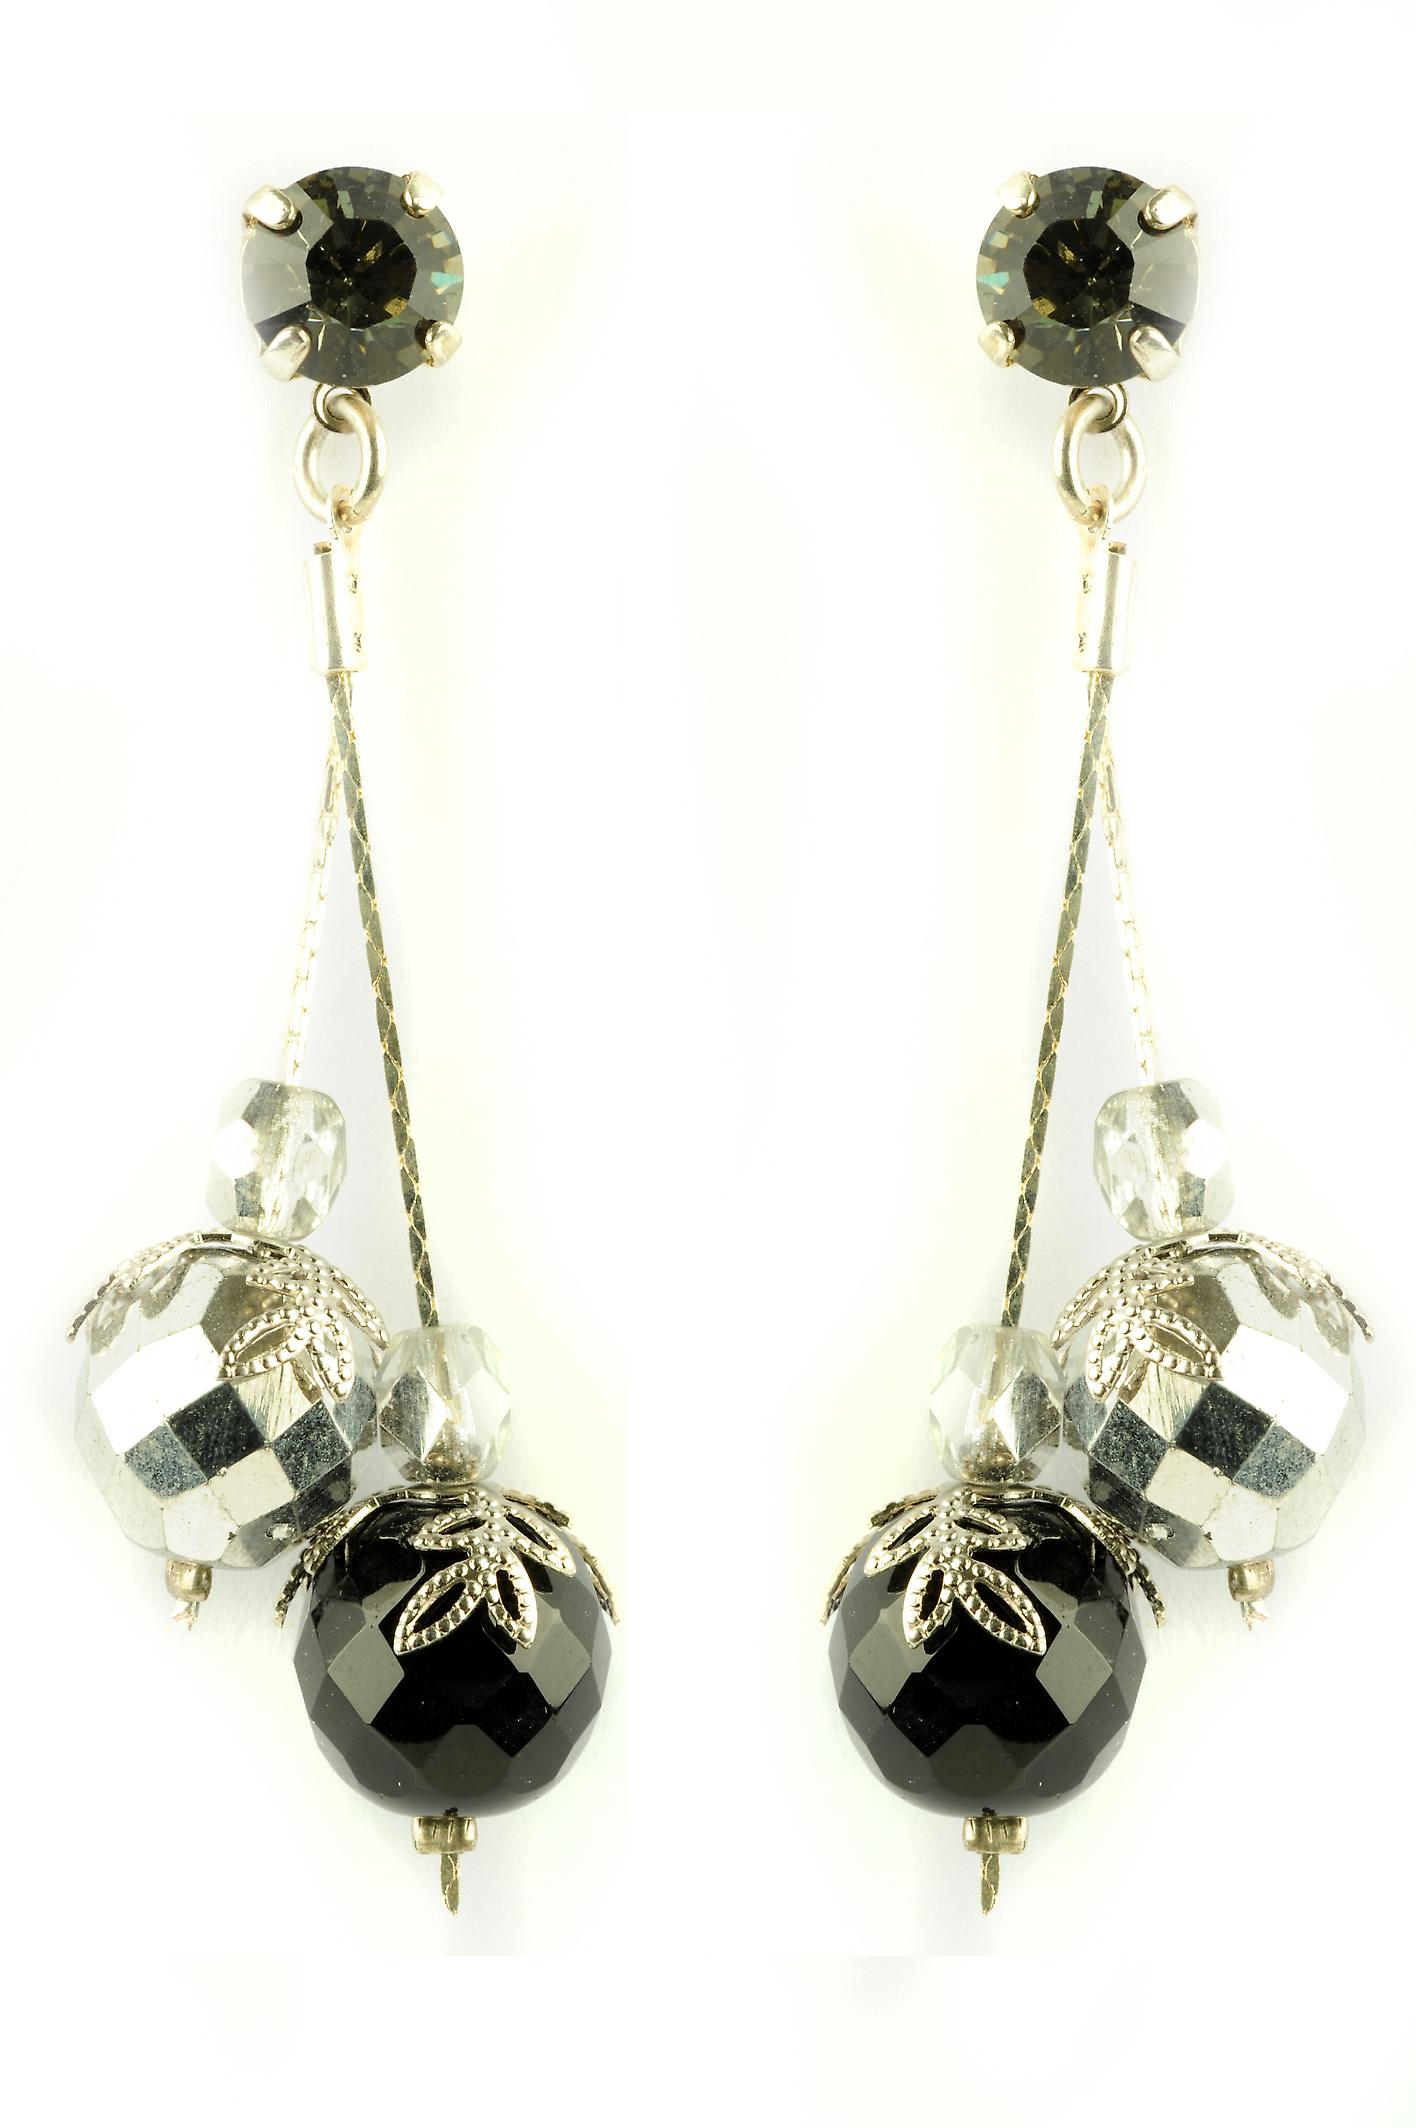 Waooh - Fashion Jewellery - WJ0696 - D'Oreille earrings with Swarovski Strass Black & Silver - Silver Color Frame